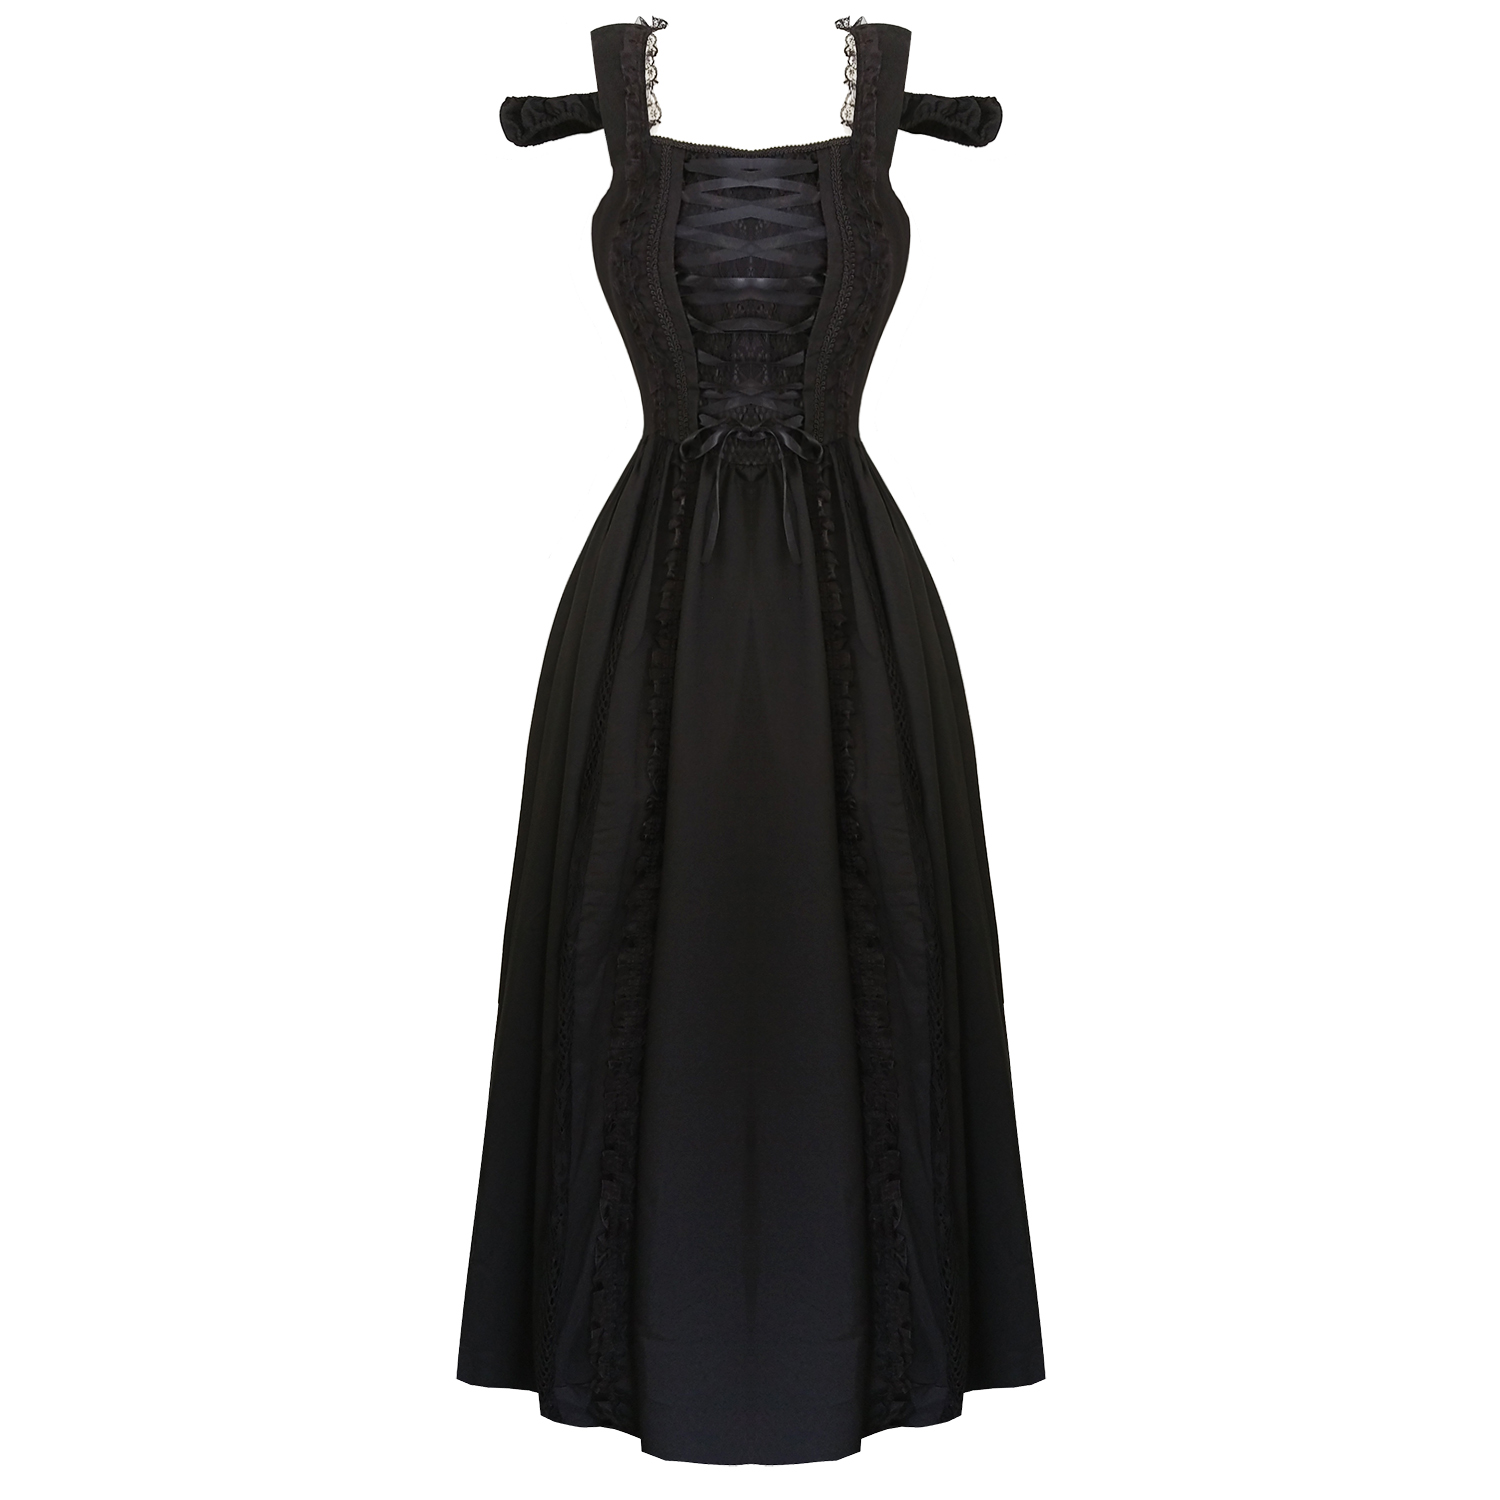 Banned Dancing Days Gothic Ball Gown Dress | Dresses | Starlet Vintage